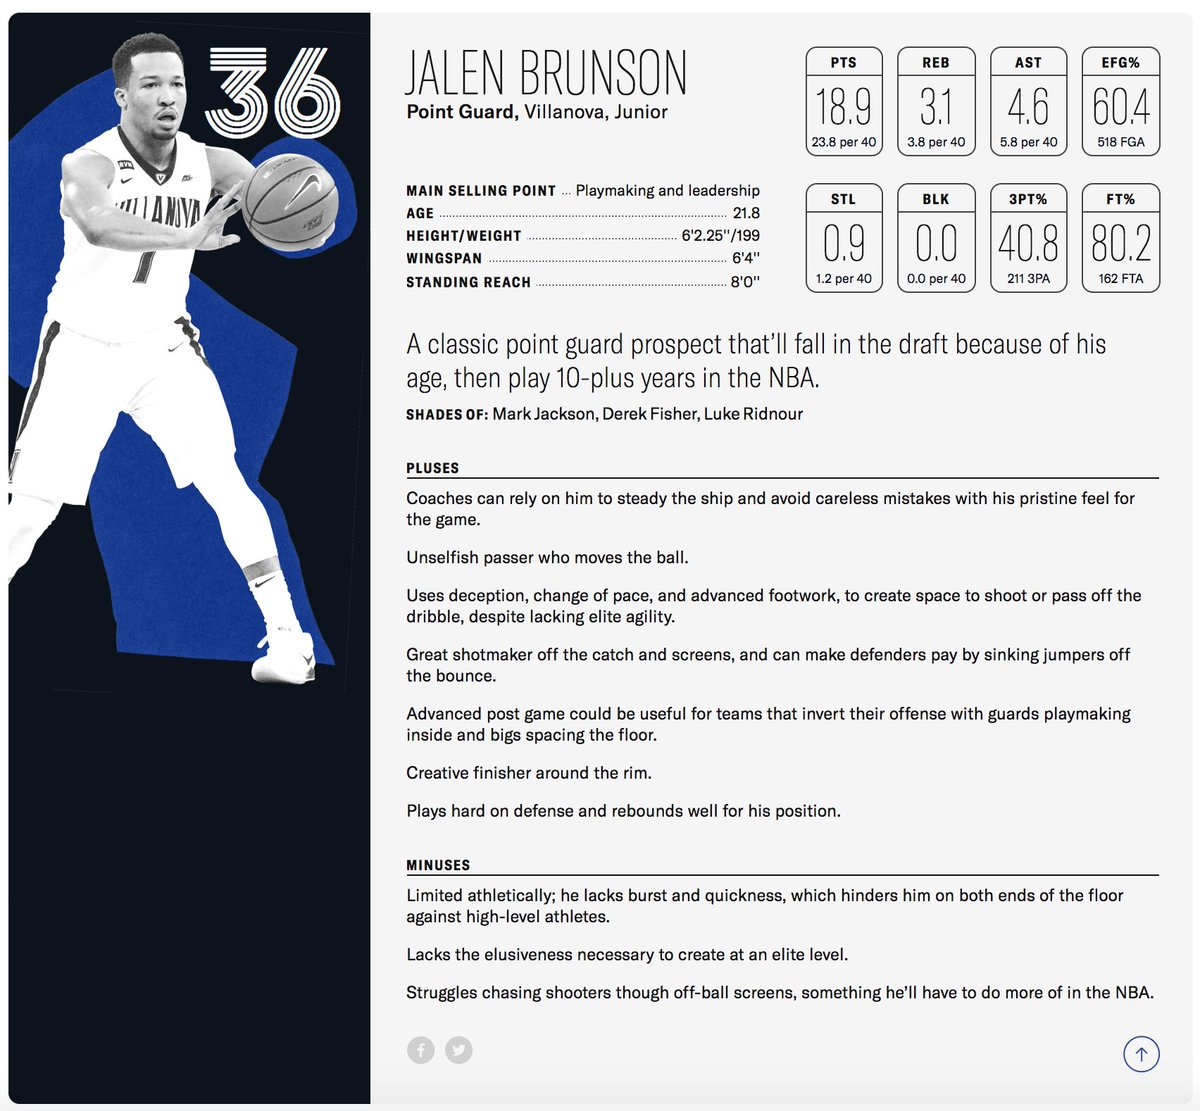 Jalen Brunson off to another impressive start for the Mavs. Hes making a case for minutes after Dennis Smith returns. I had Brunson ranked #36 in the draft, and he fell to Dallas at #33. These pluses are everything. The minuses are NBD. It can be easy to overthink things.